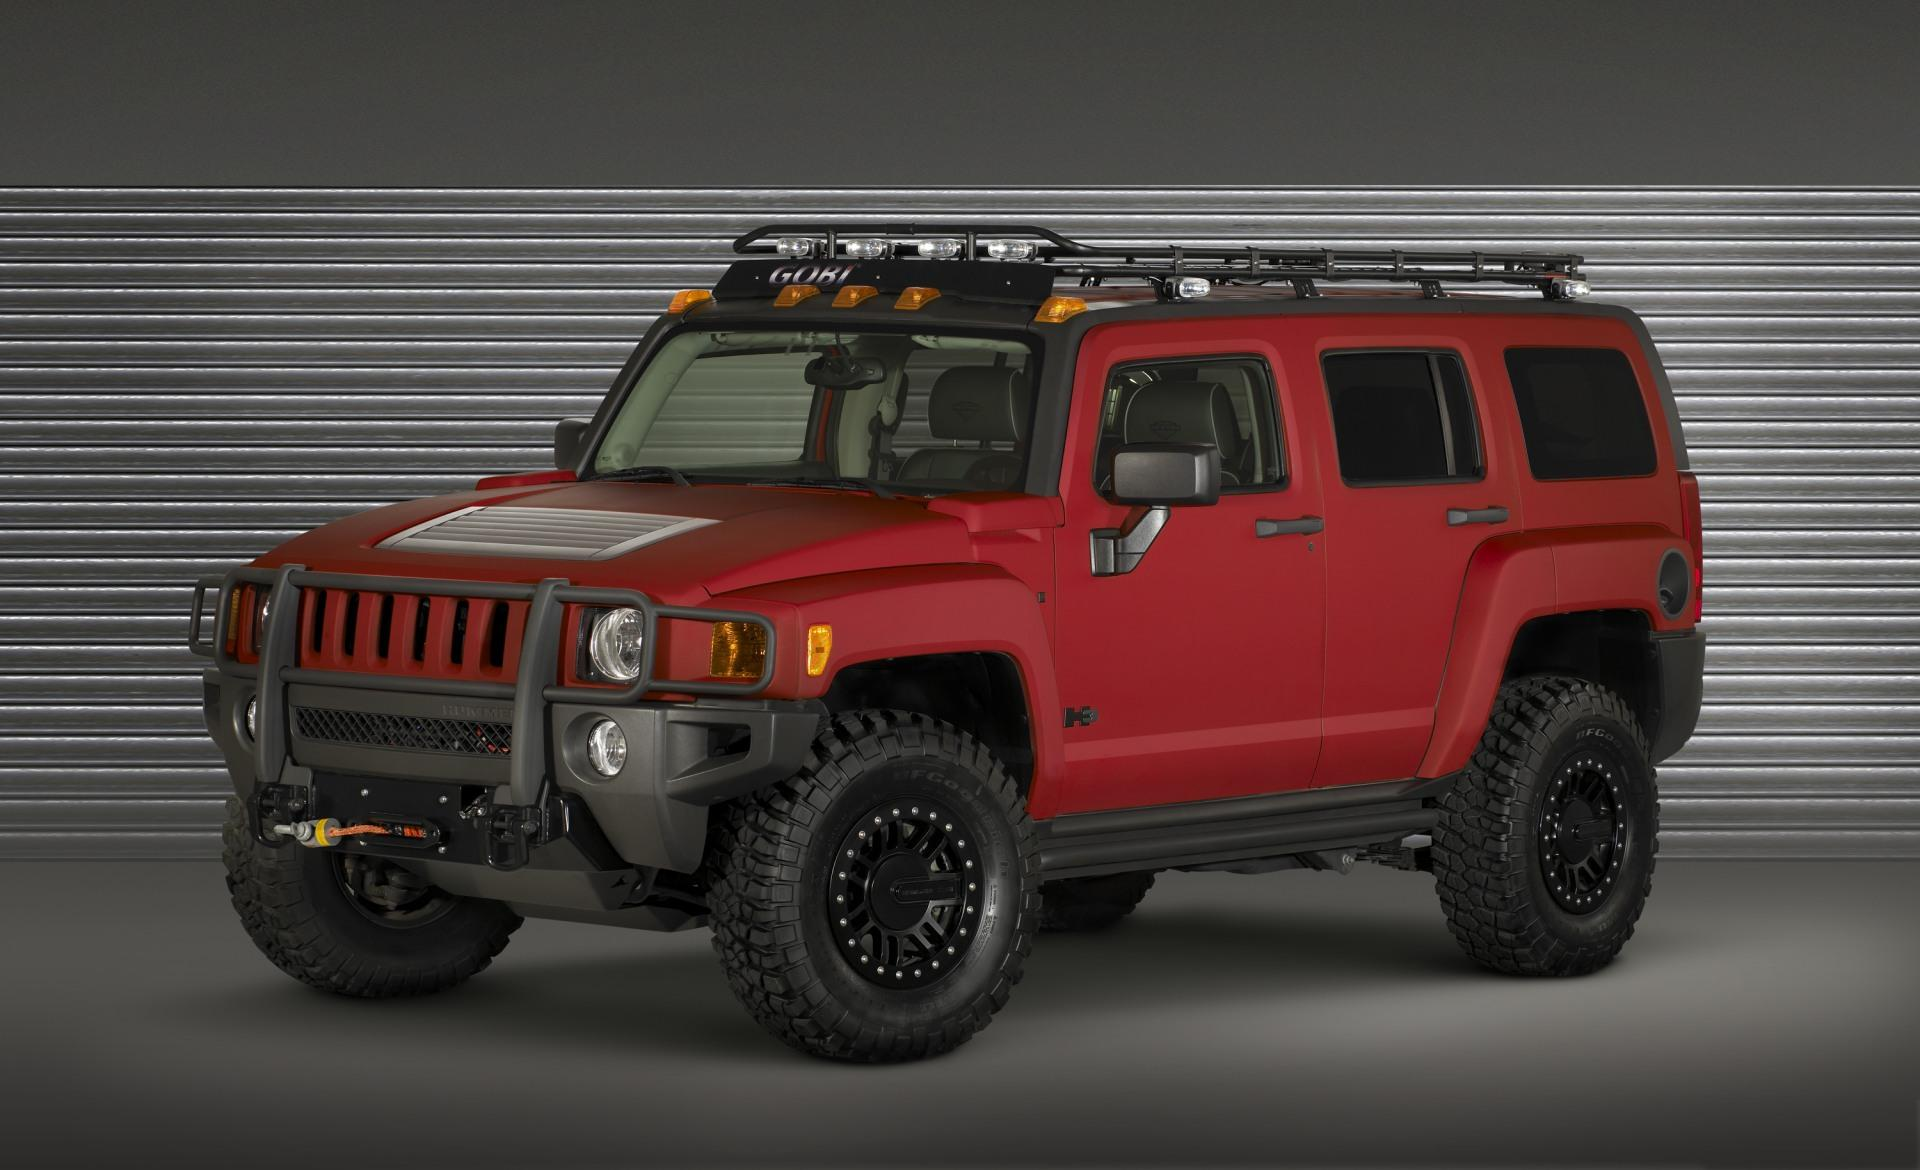 Another hummer in a hummer